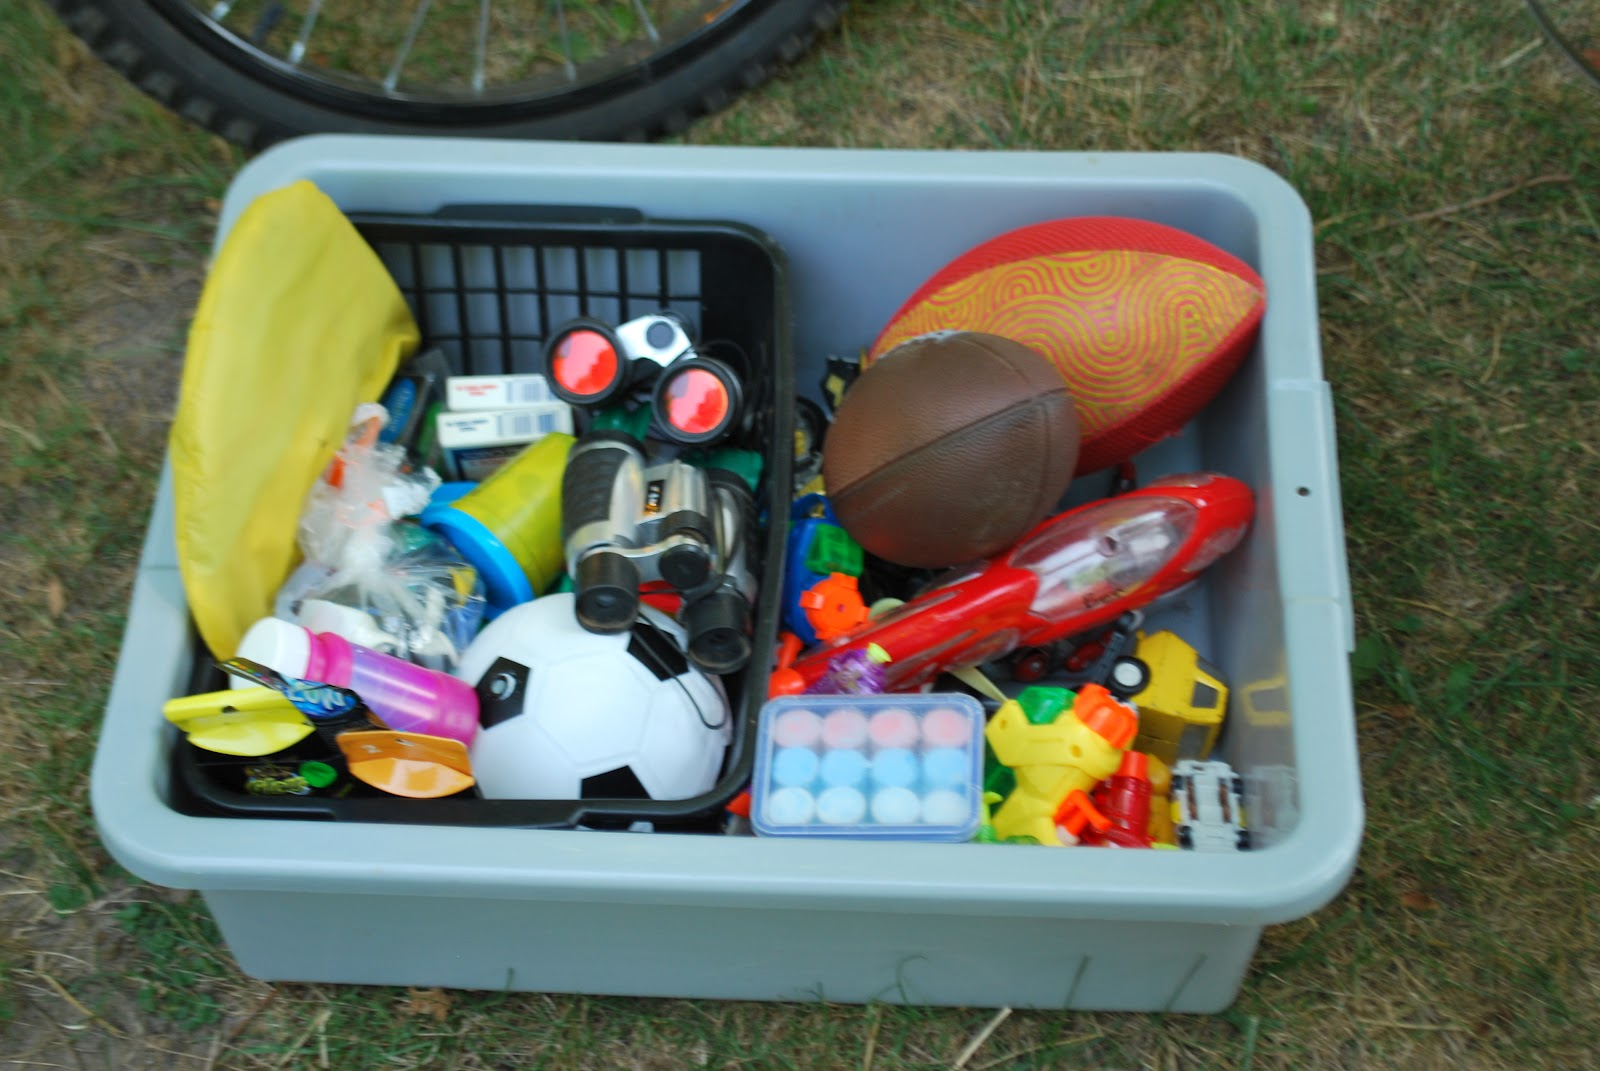 Also For Kid Friendly Camping Mennu See My Post On Family 4 Day Menu With Grocery Lists And More Organization Ideas Go To